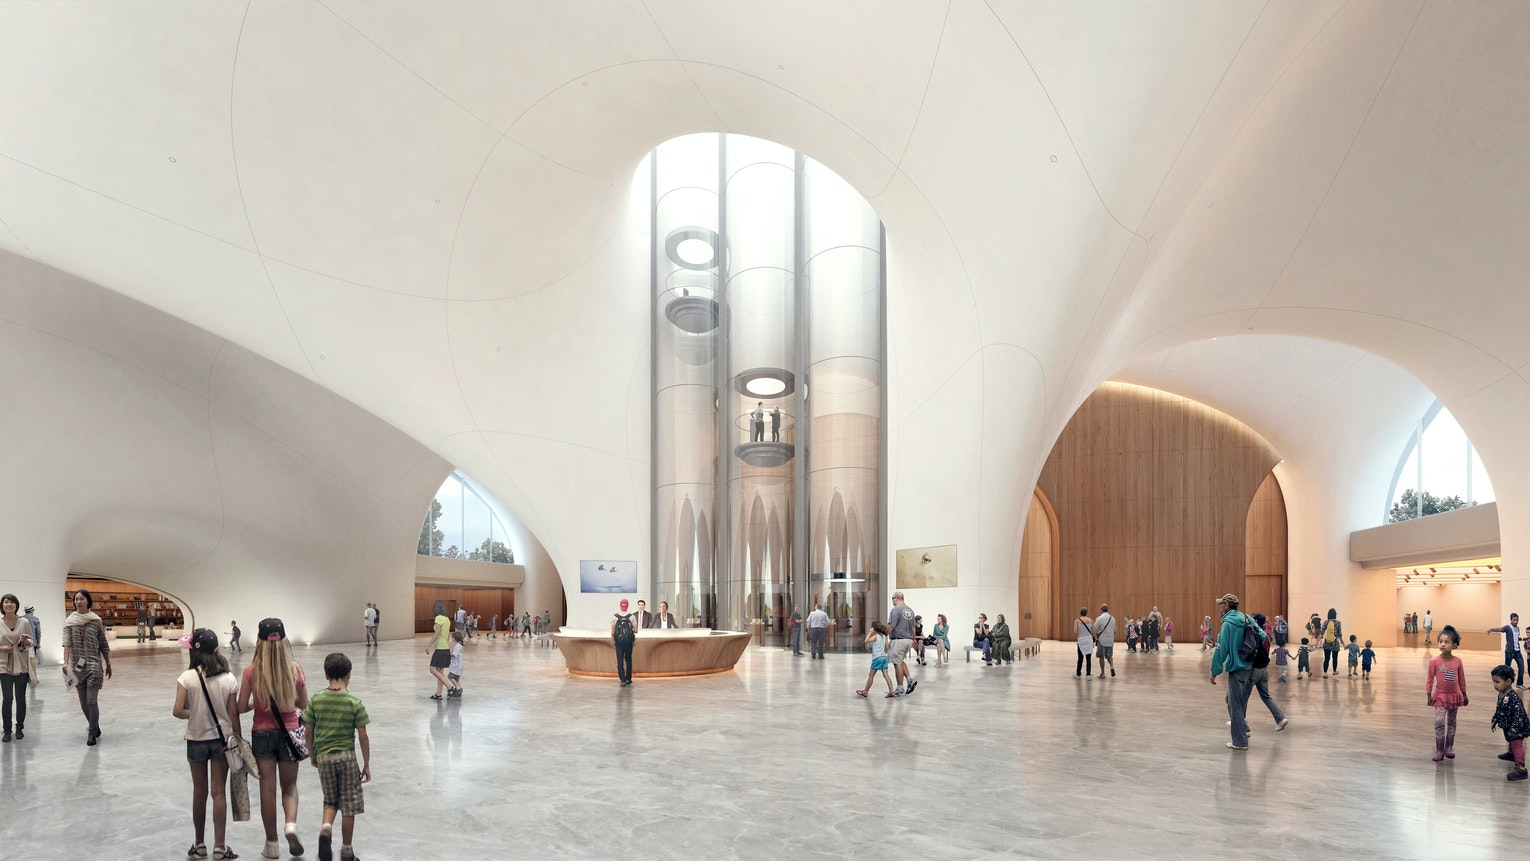 The Lucas Museum's cavernous main hall will lead to galleries, a research library, classrooms, and screening rooms.